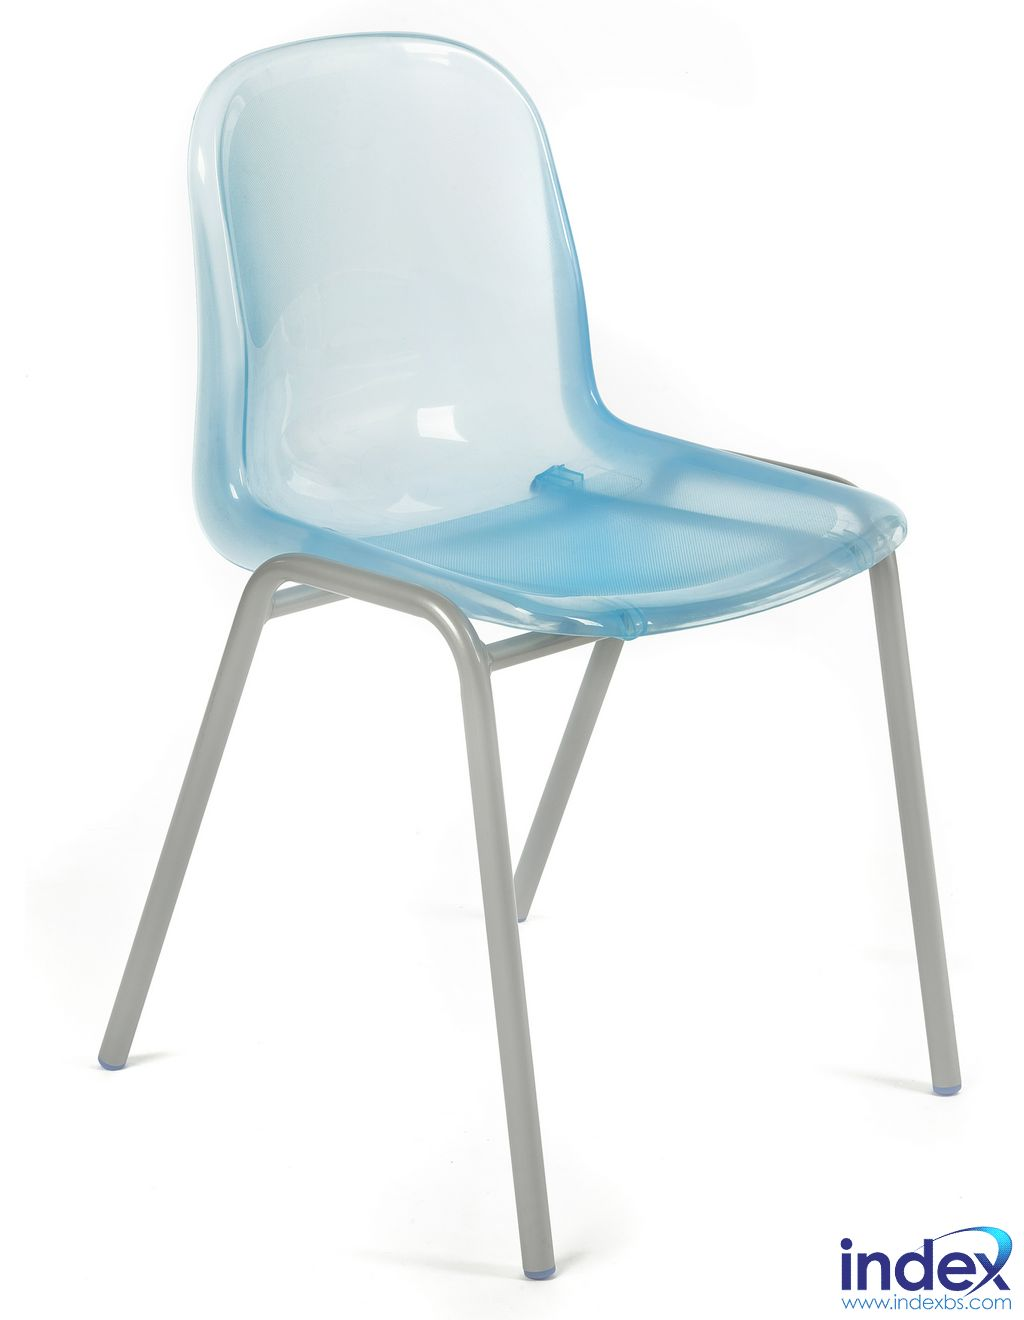 Proform Gel Chair Range